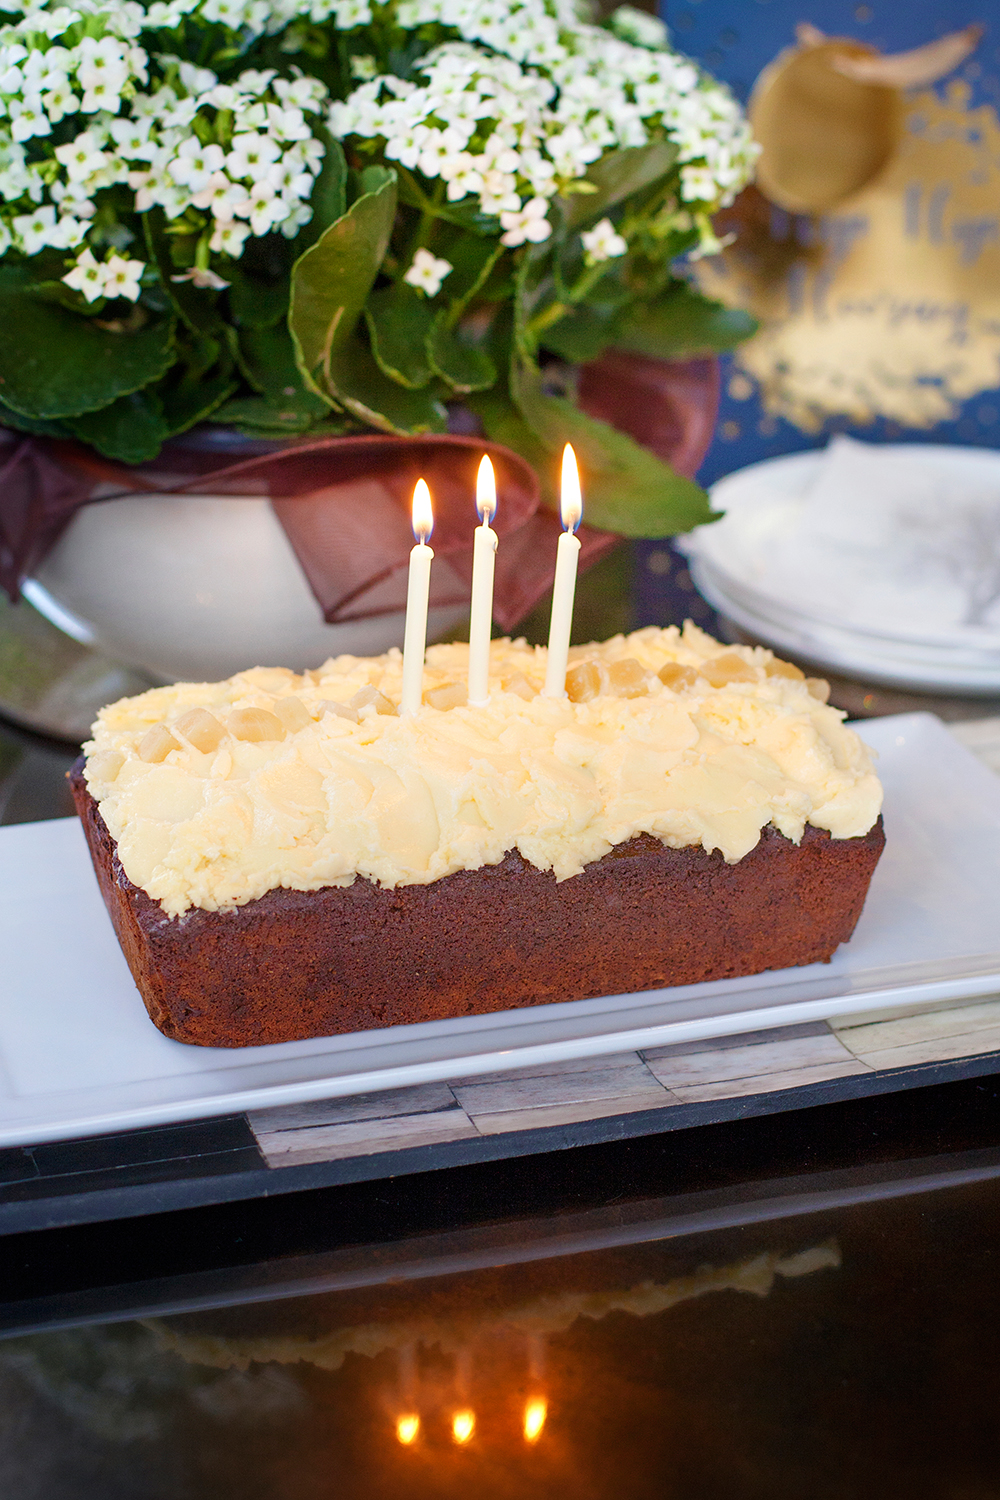 ginger whisky birthday cake.jpg